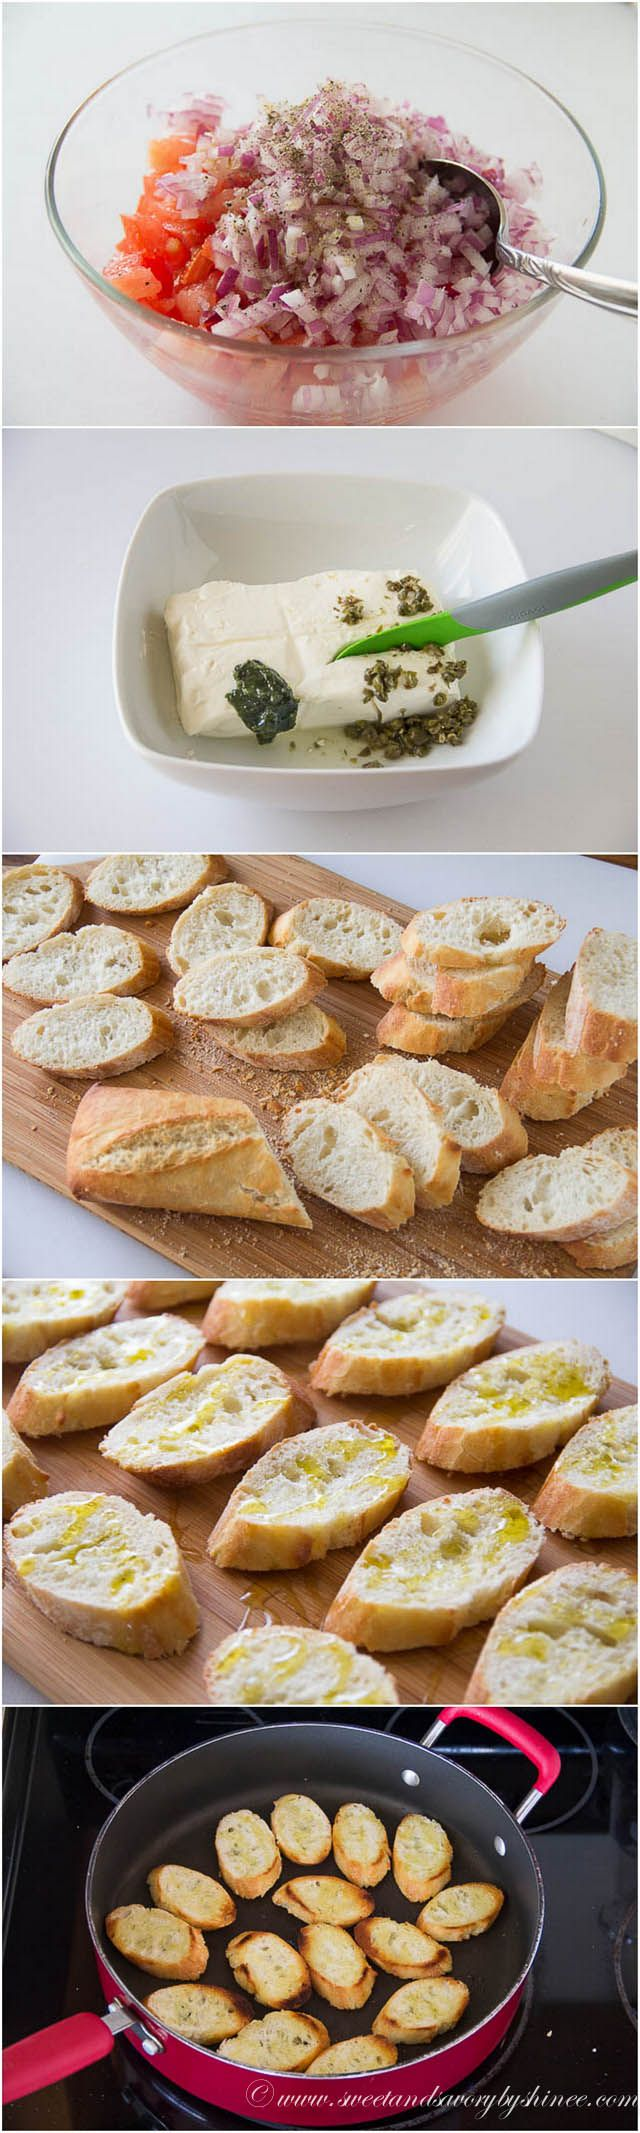 Learn how to make crostini in less than 30 minutes! These smoked salmon crostini are the simplest, yet most flavorful appetizer you can offer at the cocktail party.